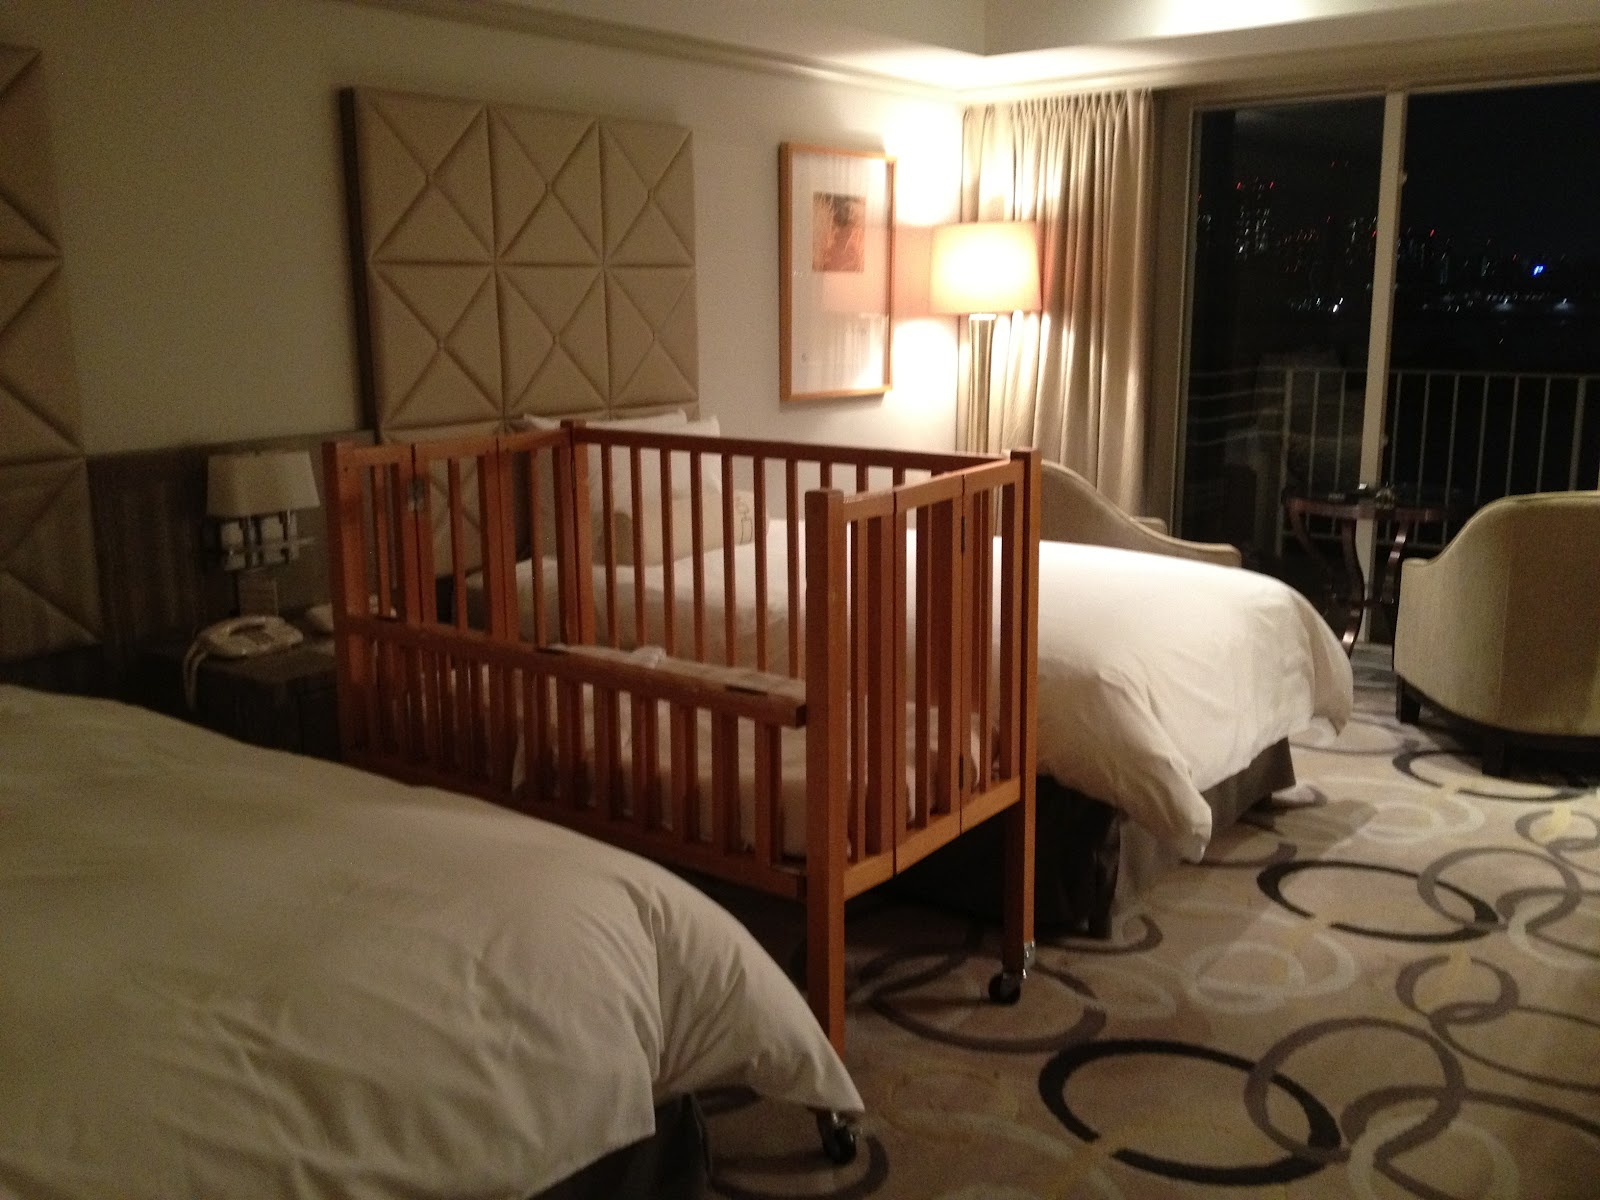 Baby bed youtube - Our Hotel Room With Baby Cot